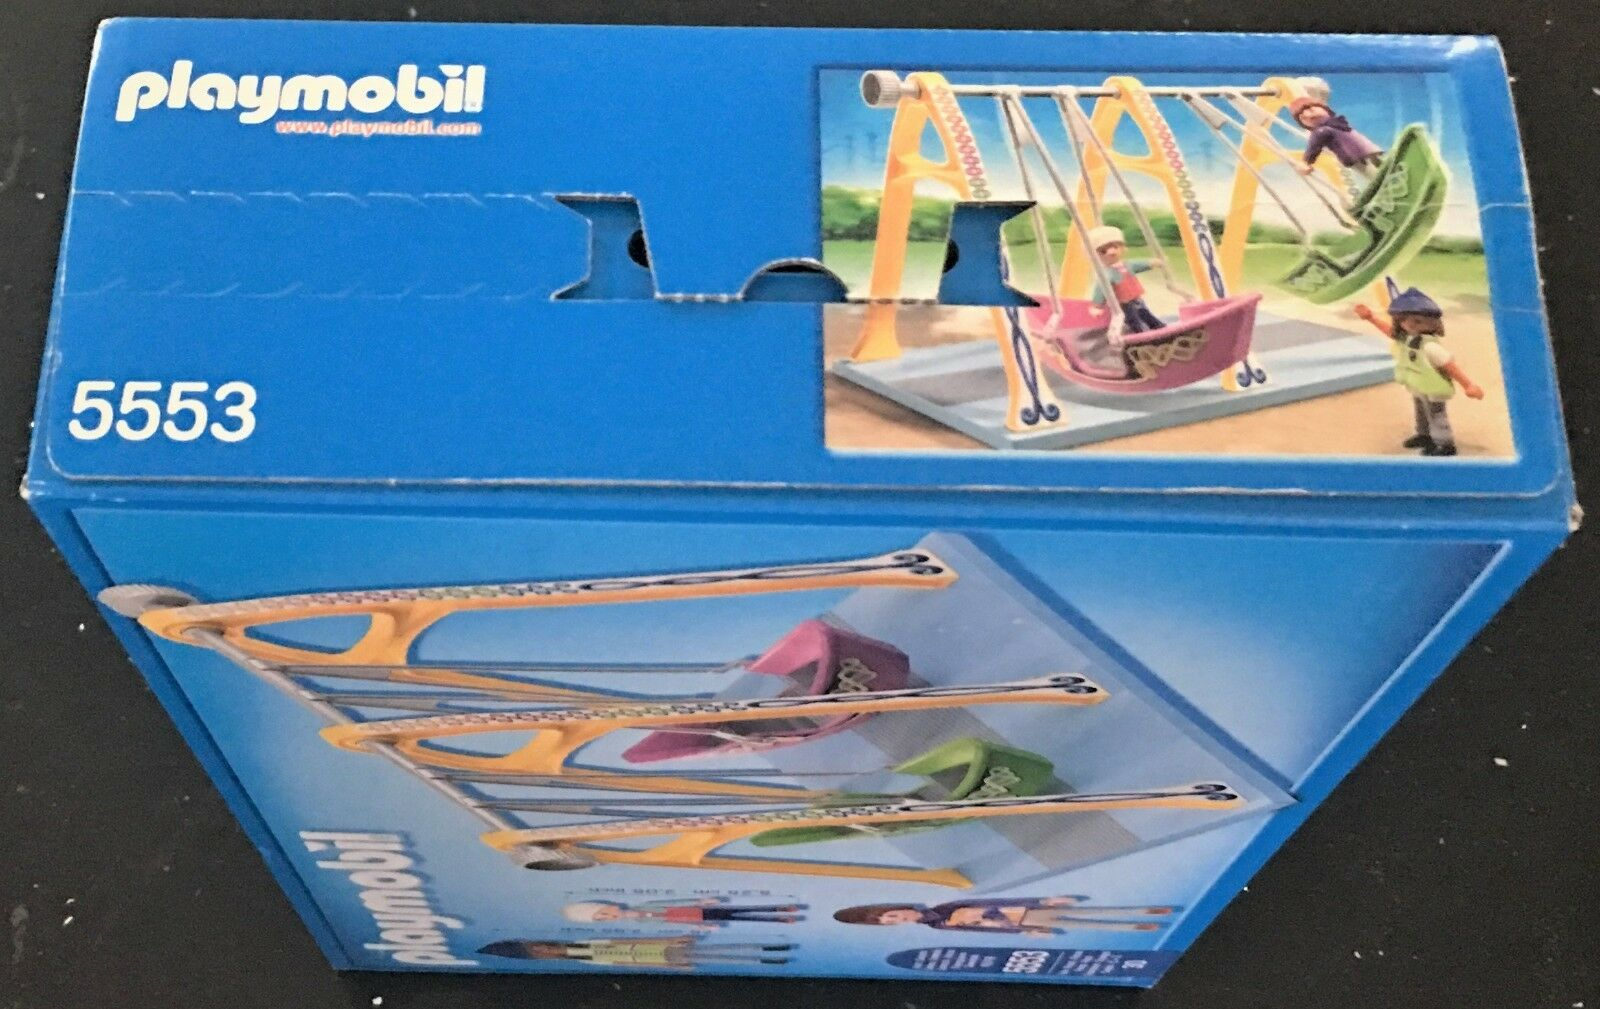 Playmobil 5553 Boat Swings Swings Swings Ride Play Set Ages 4+ New Toy Play Gift Girls Boys 74a4f1